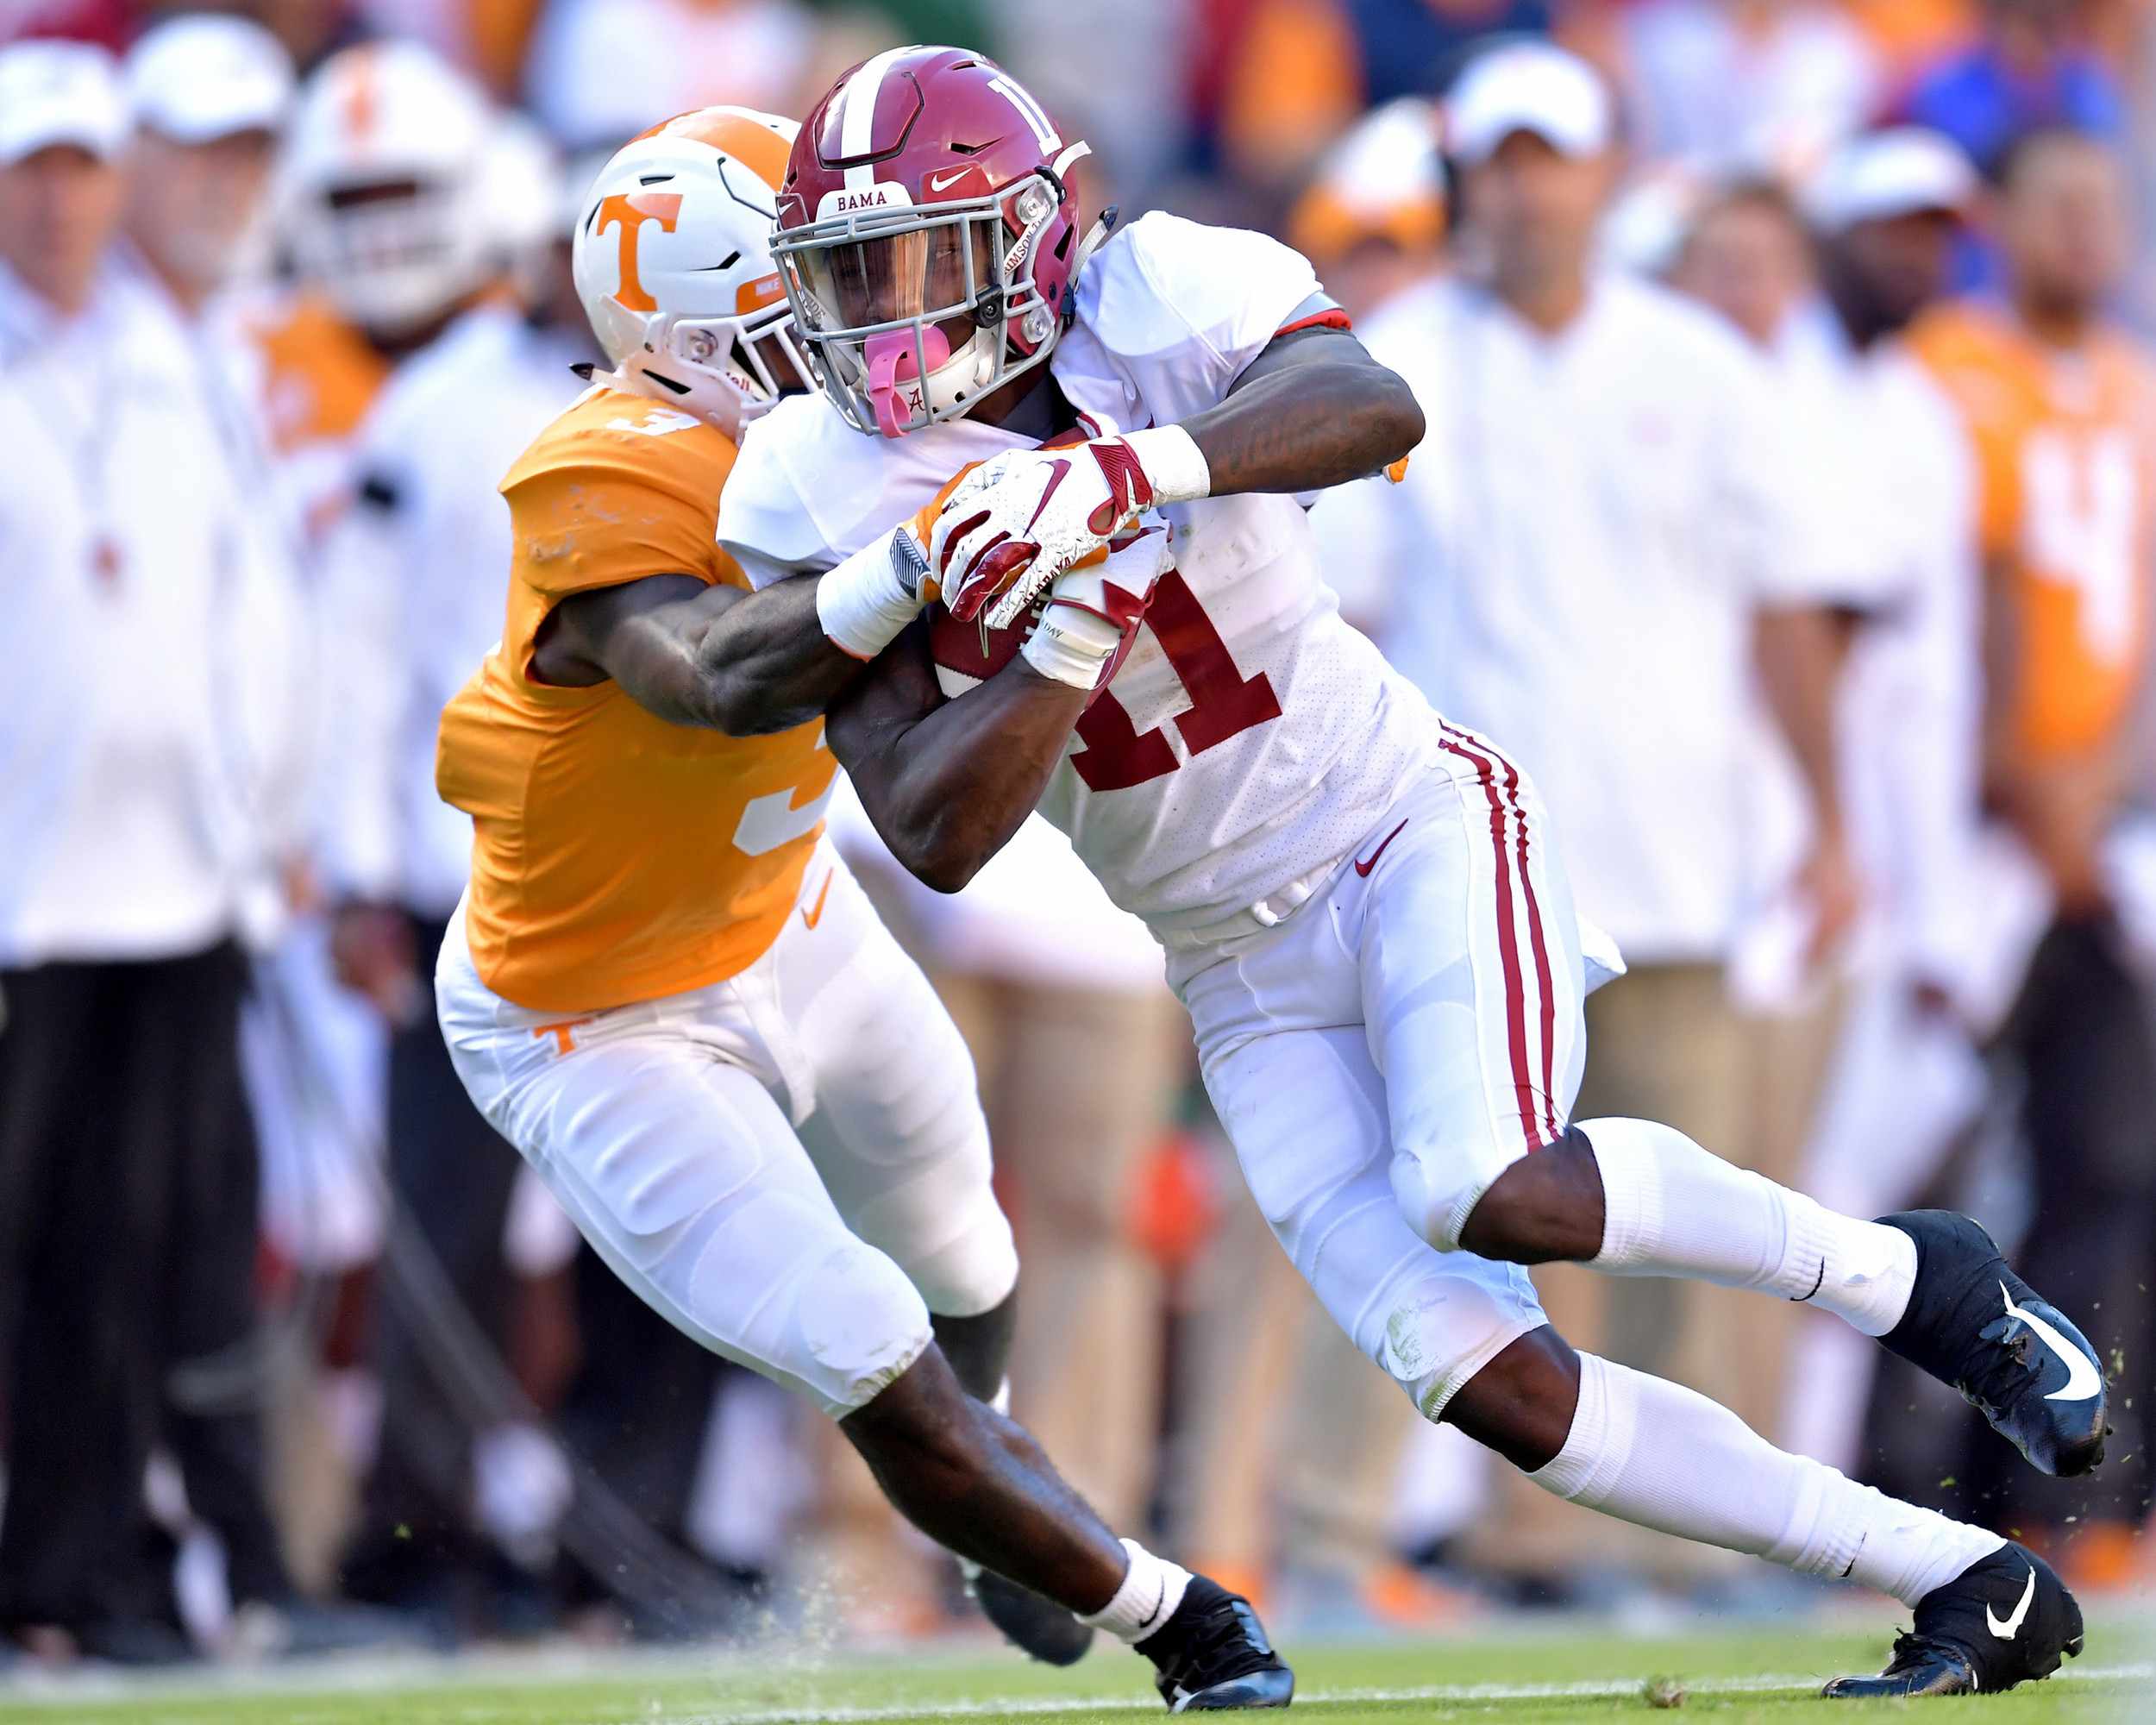 Alabama Crimson Tide wide receiver Henry Ruggs III (11) adds yards after a reception in the second quarter of the Alabama at Tennessee NCAA football game on Saturday, Oct. 20, 2018, at Neyland Stadium in Knoxville. Tenn. Alabama wins 58-21. (Photo by Lee Walls)